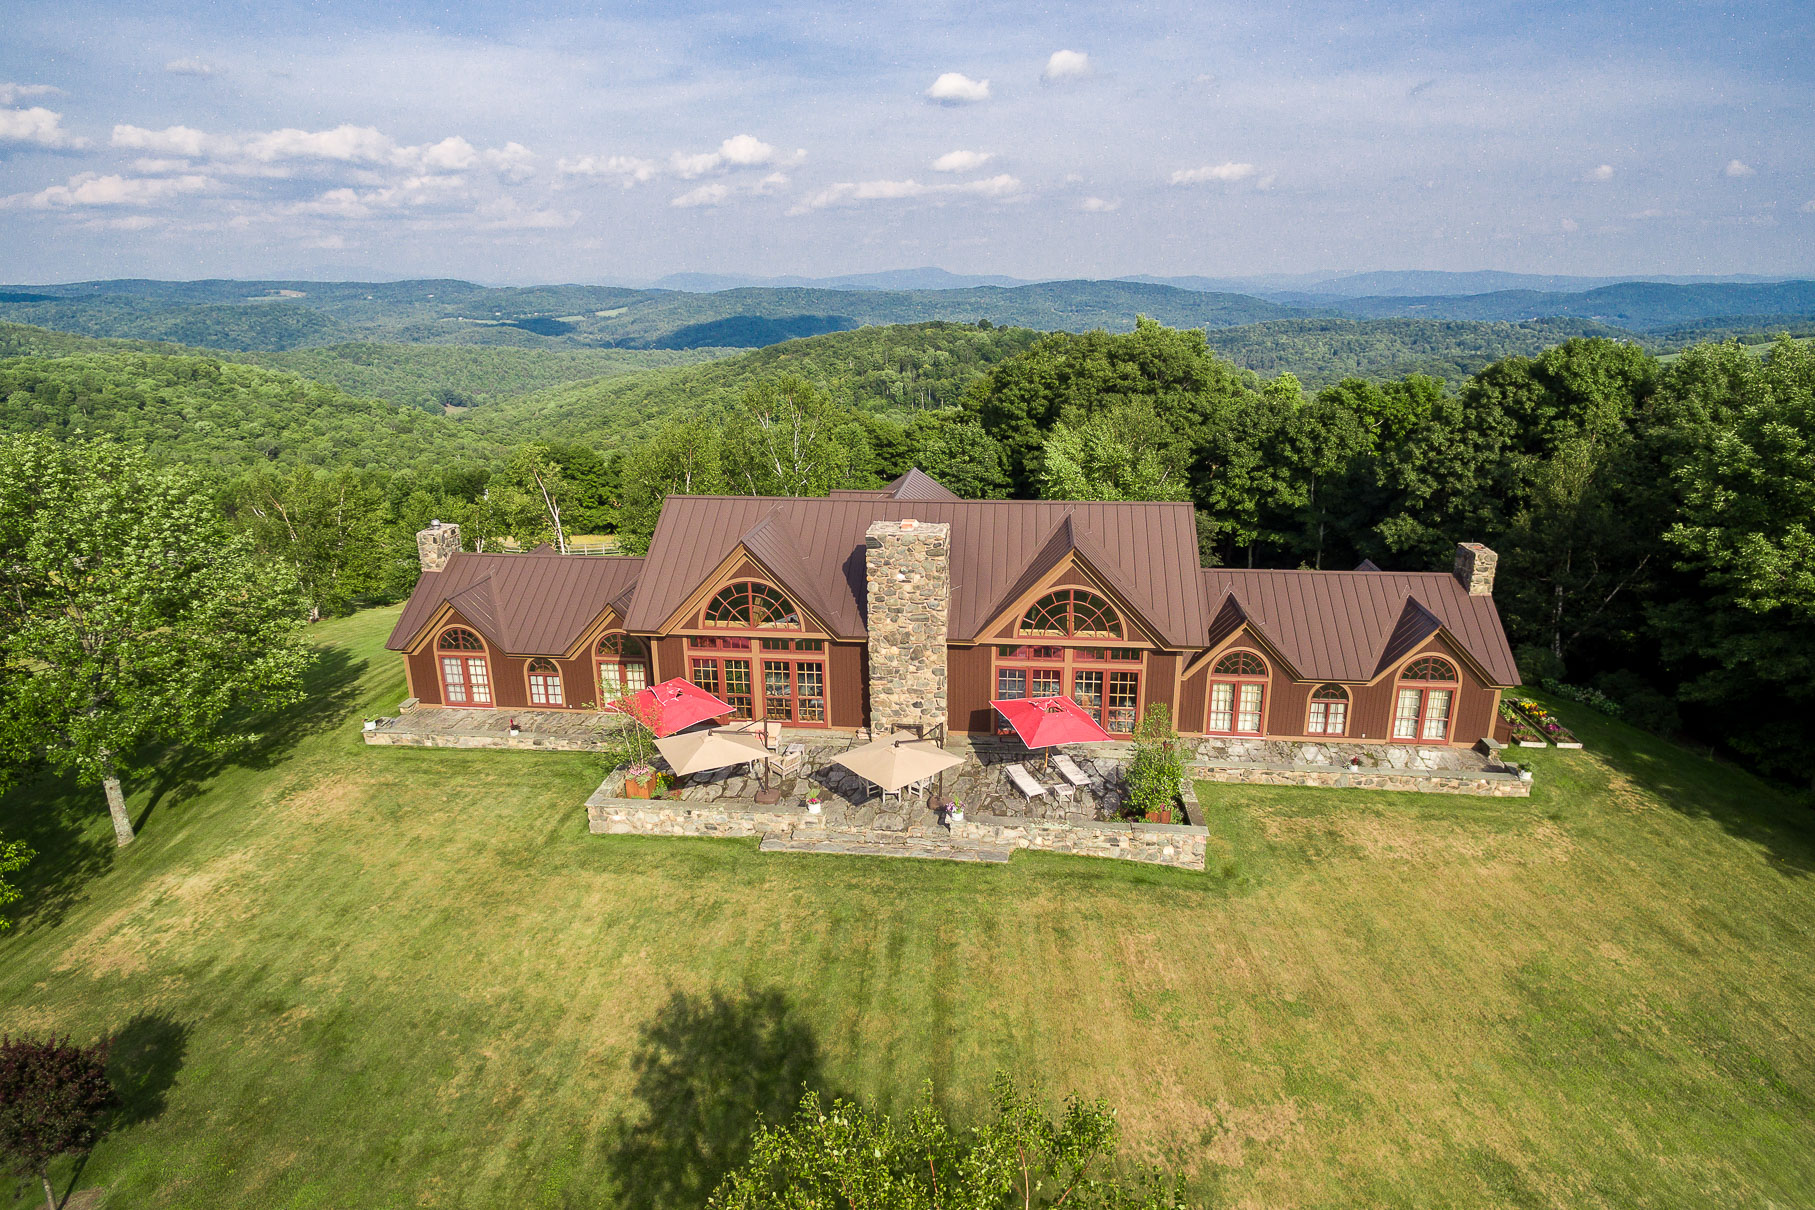 Single Family Home for Sale at 21 Havelok Hill Rd, Strafford Strafford, Vermont, 05072 United States